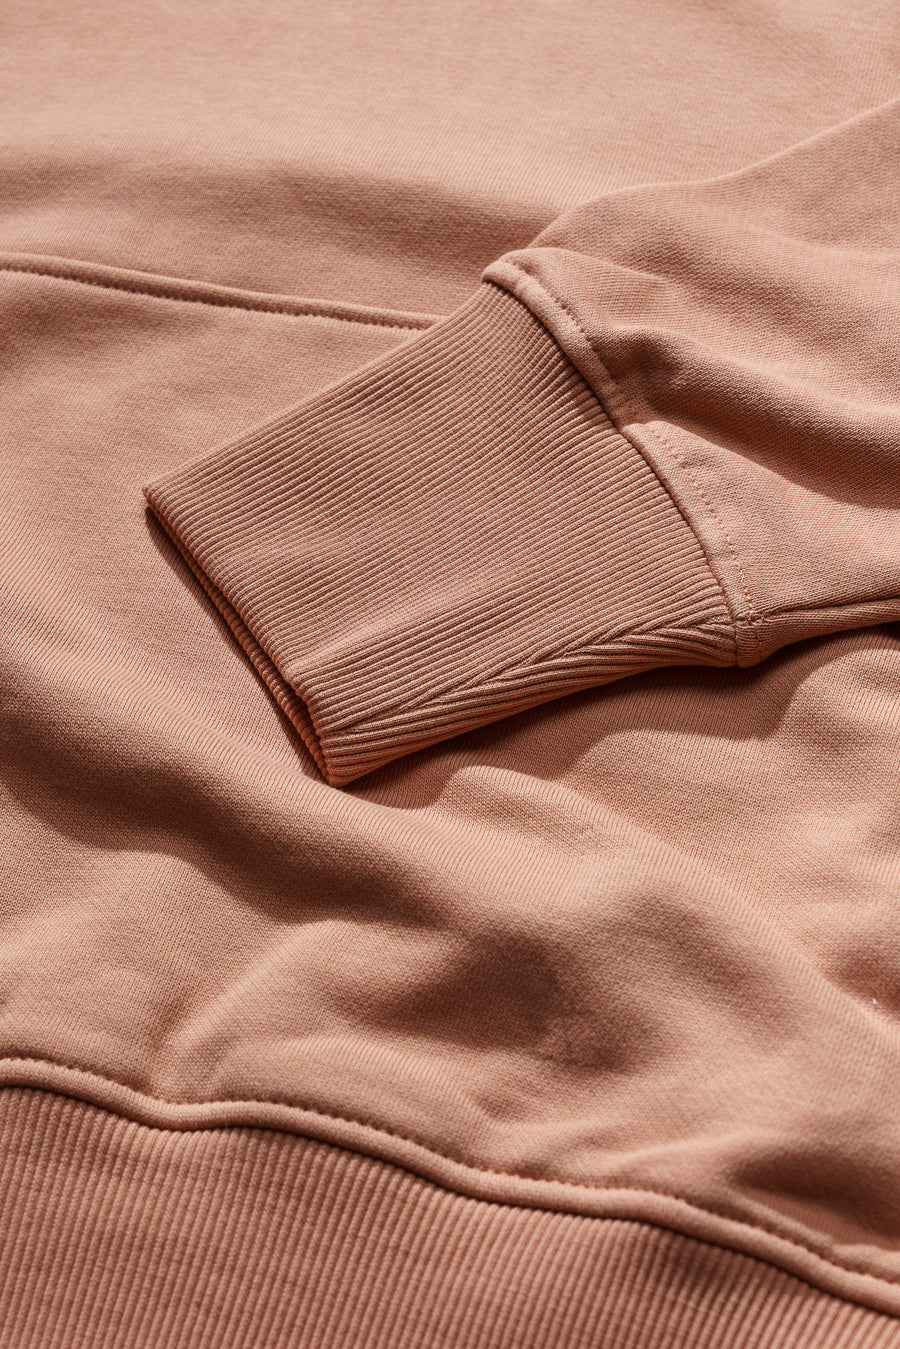 Rent Due Sweatshirt - Salmon Pink